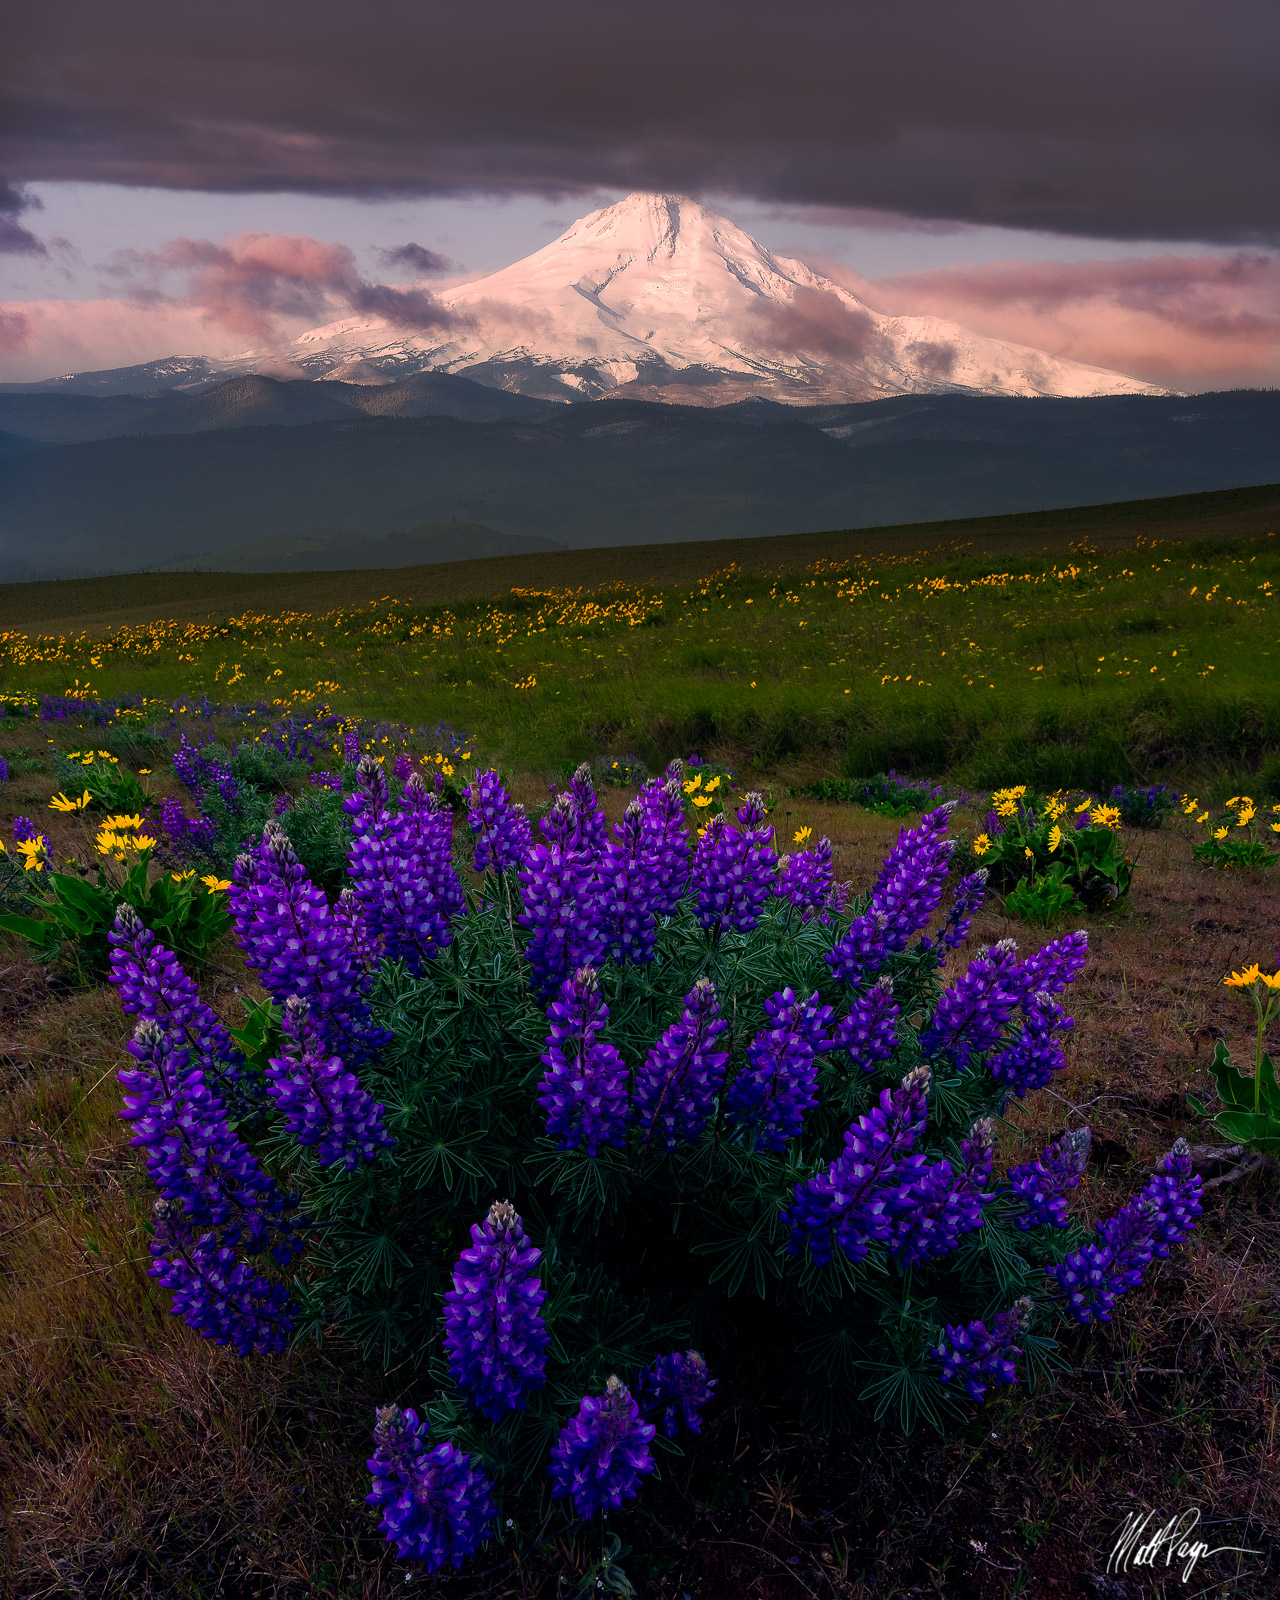 Lupine, Mount Hood, Wildflowers, Columbia River Gorge, Dalles Mountain Ranch, Pacific Northwest, Washington, The Dalles, photo